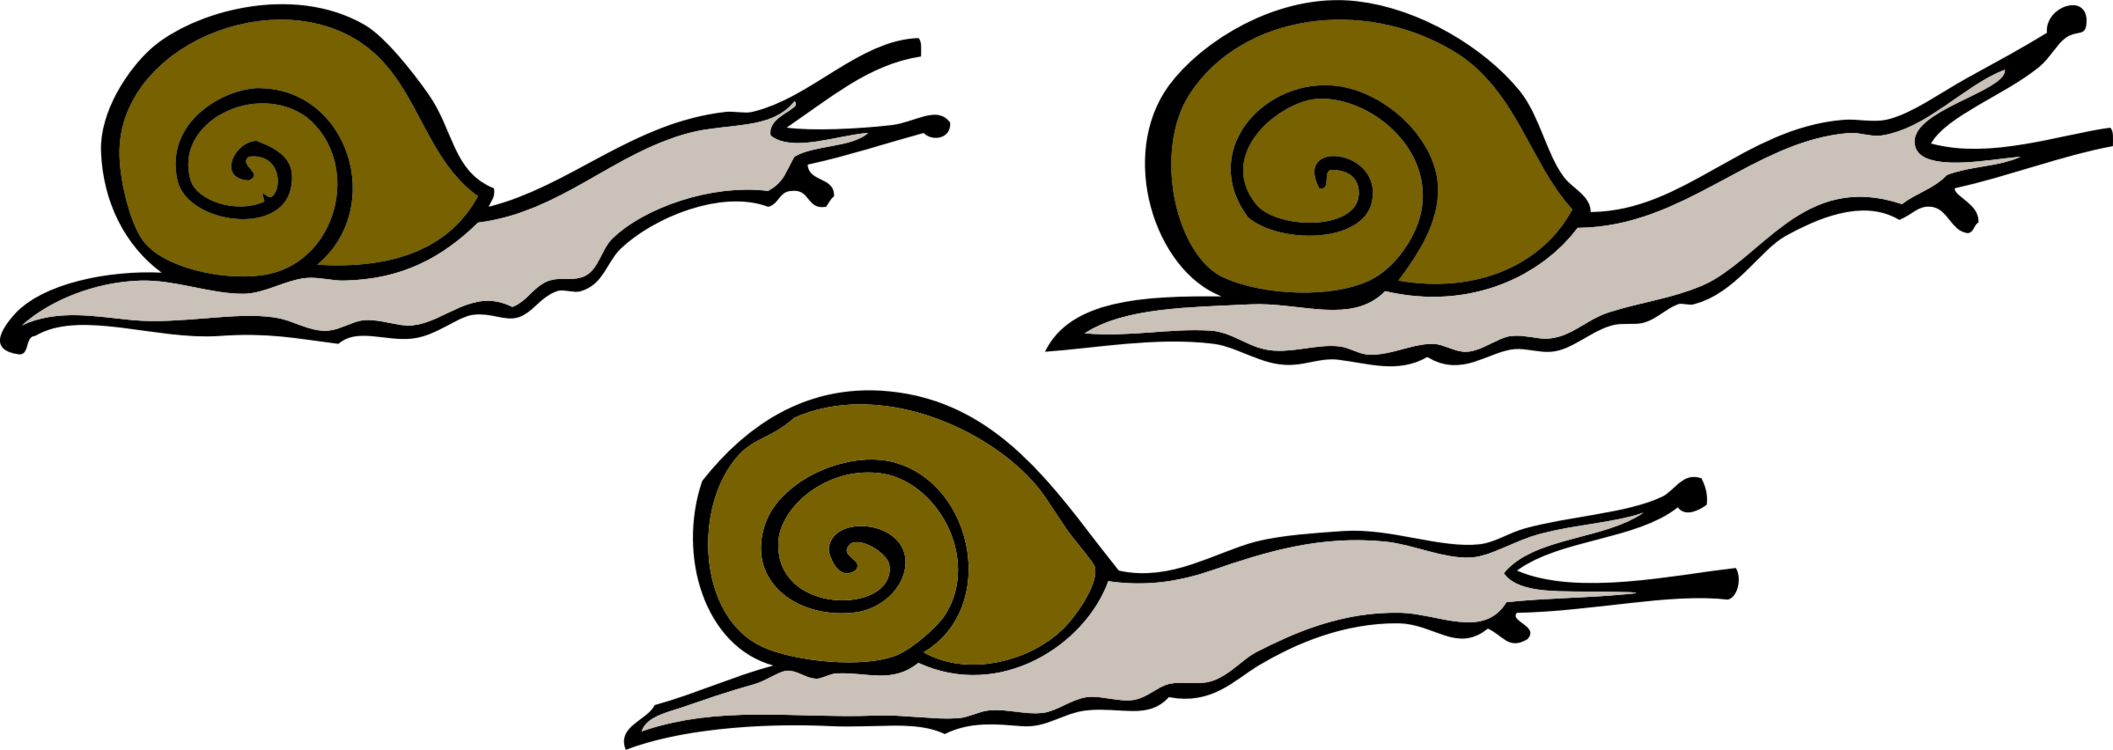 Snail,Artwork,Pollinator